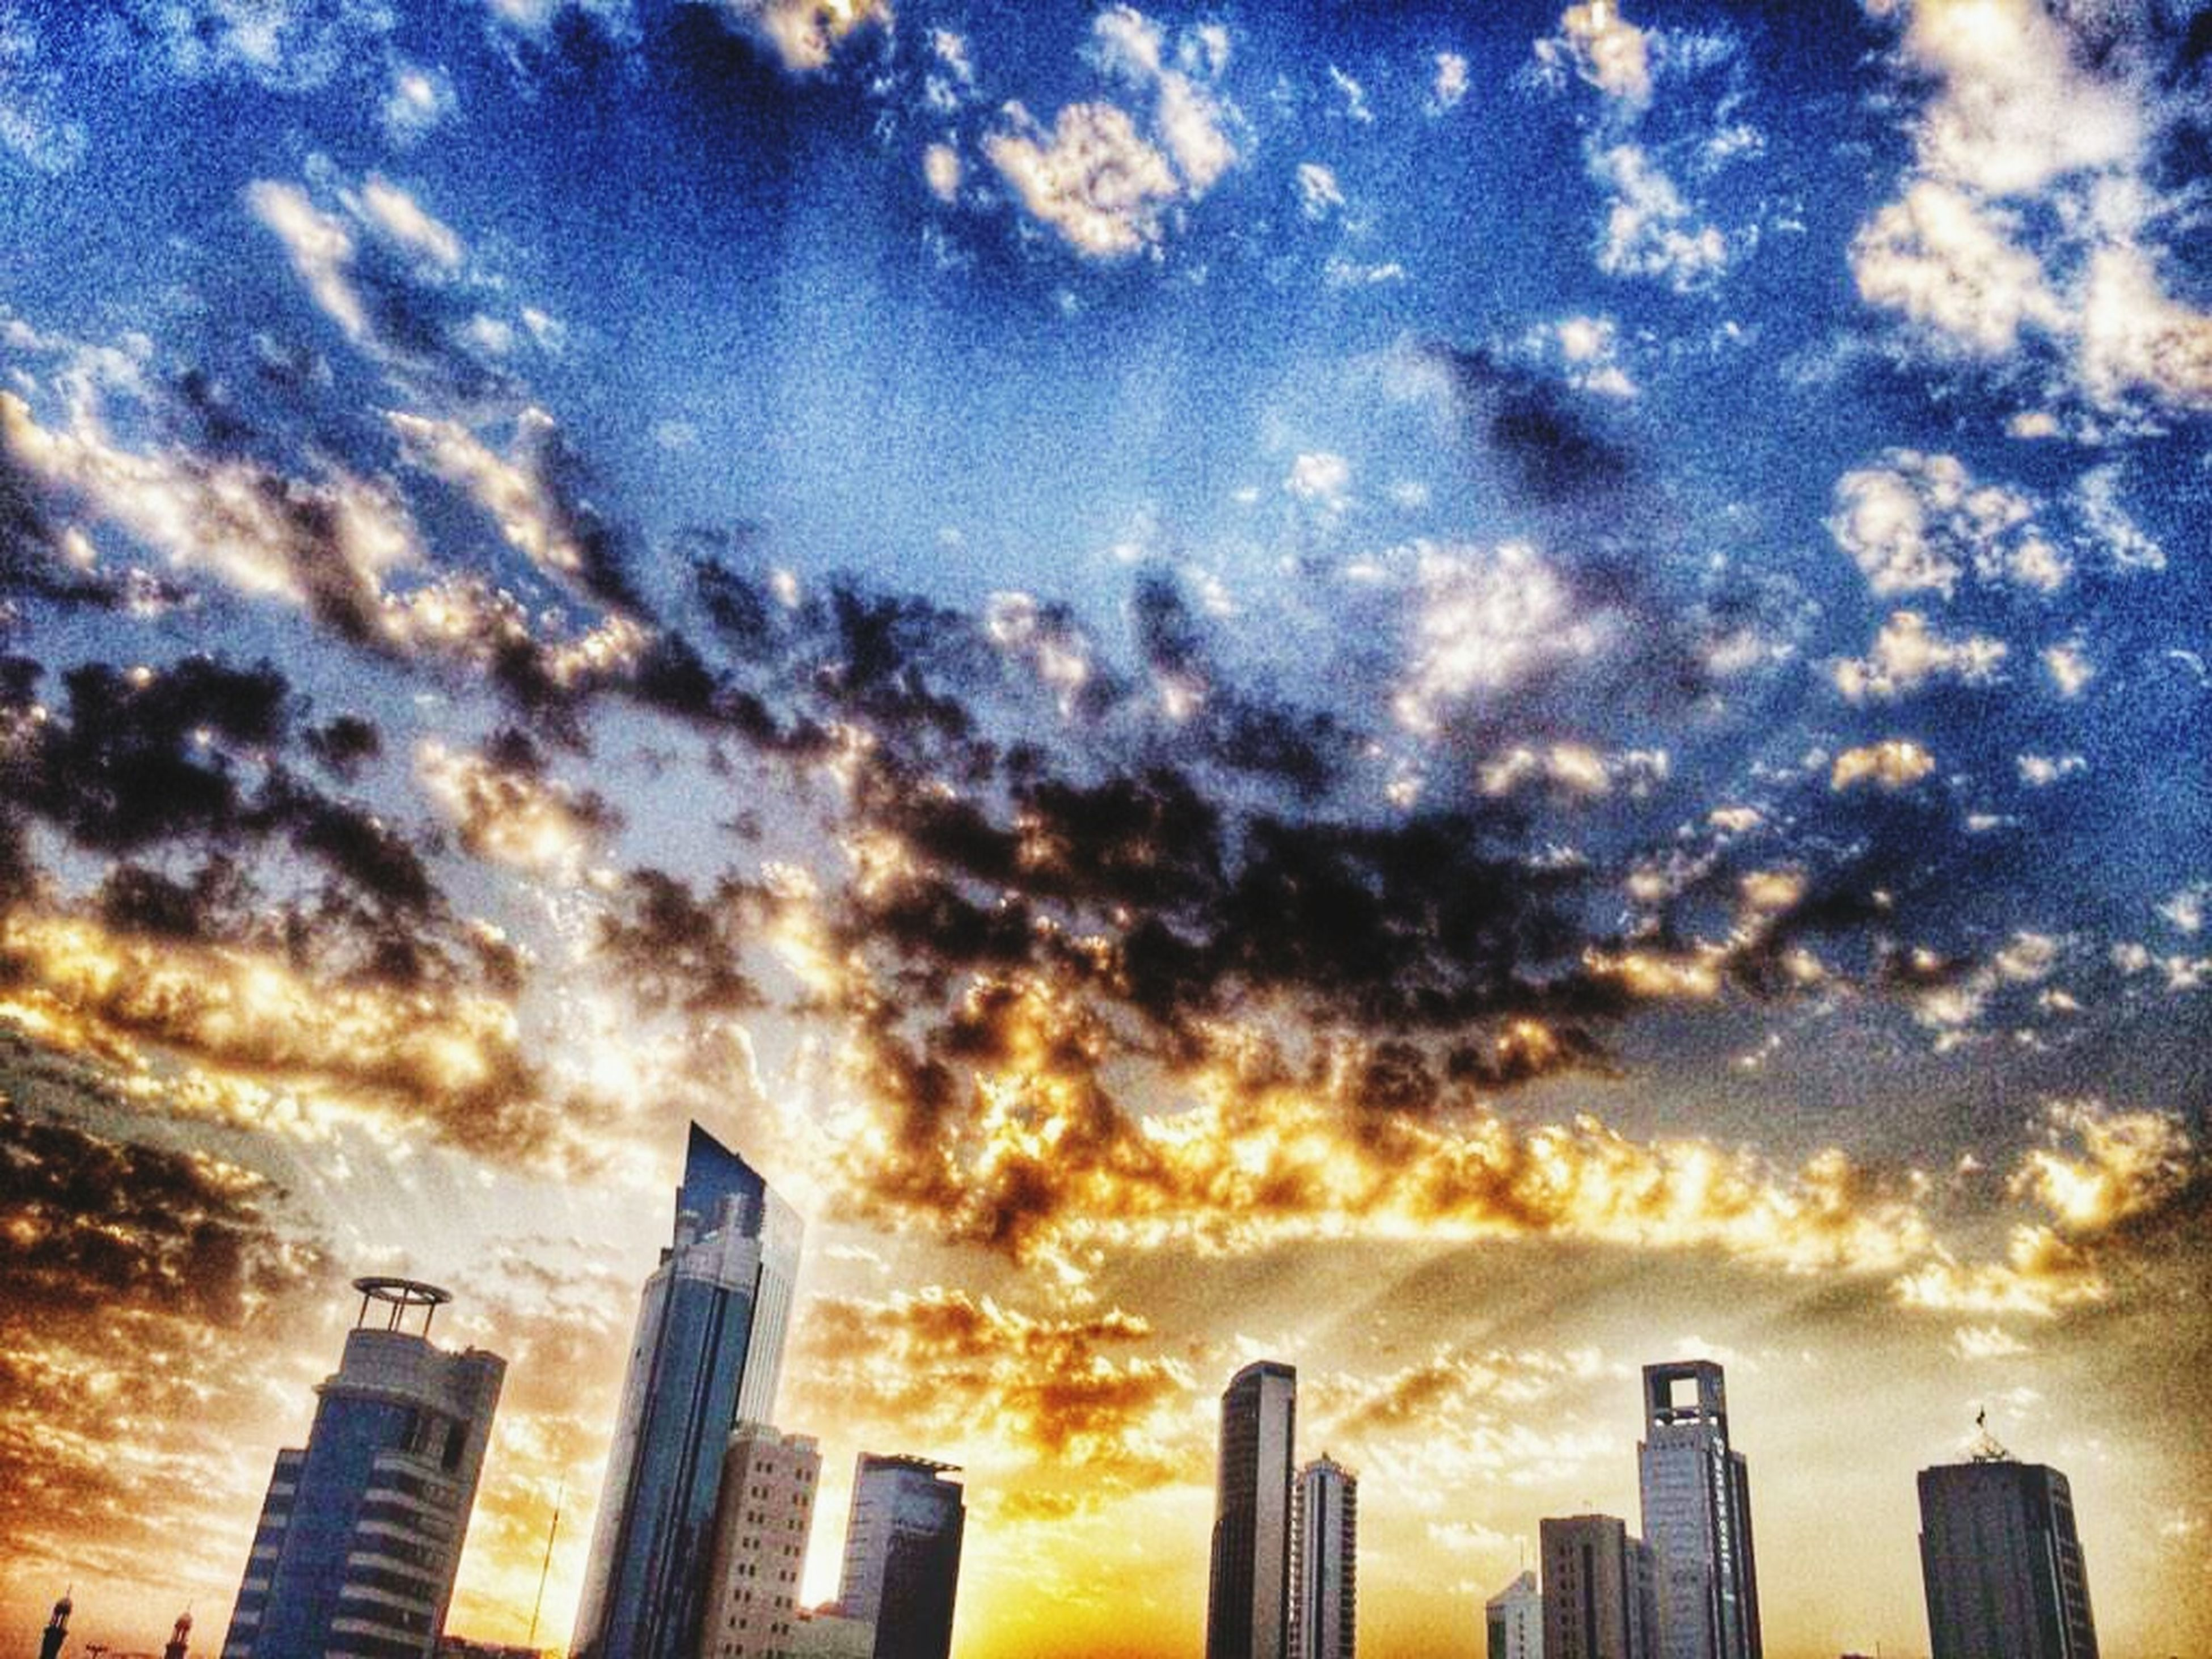 sky, building exterior, architecture, cloud - sky, built structure, city, skyscraper, cloudy, tall - high, cityscape, sunset, cloud, modern, urban skyline, weather, office building, low angle view, outdoors, tower, no people